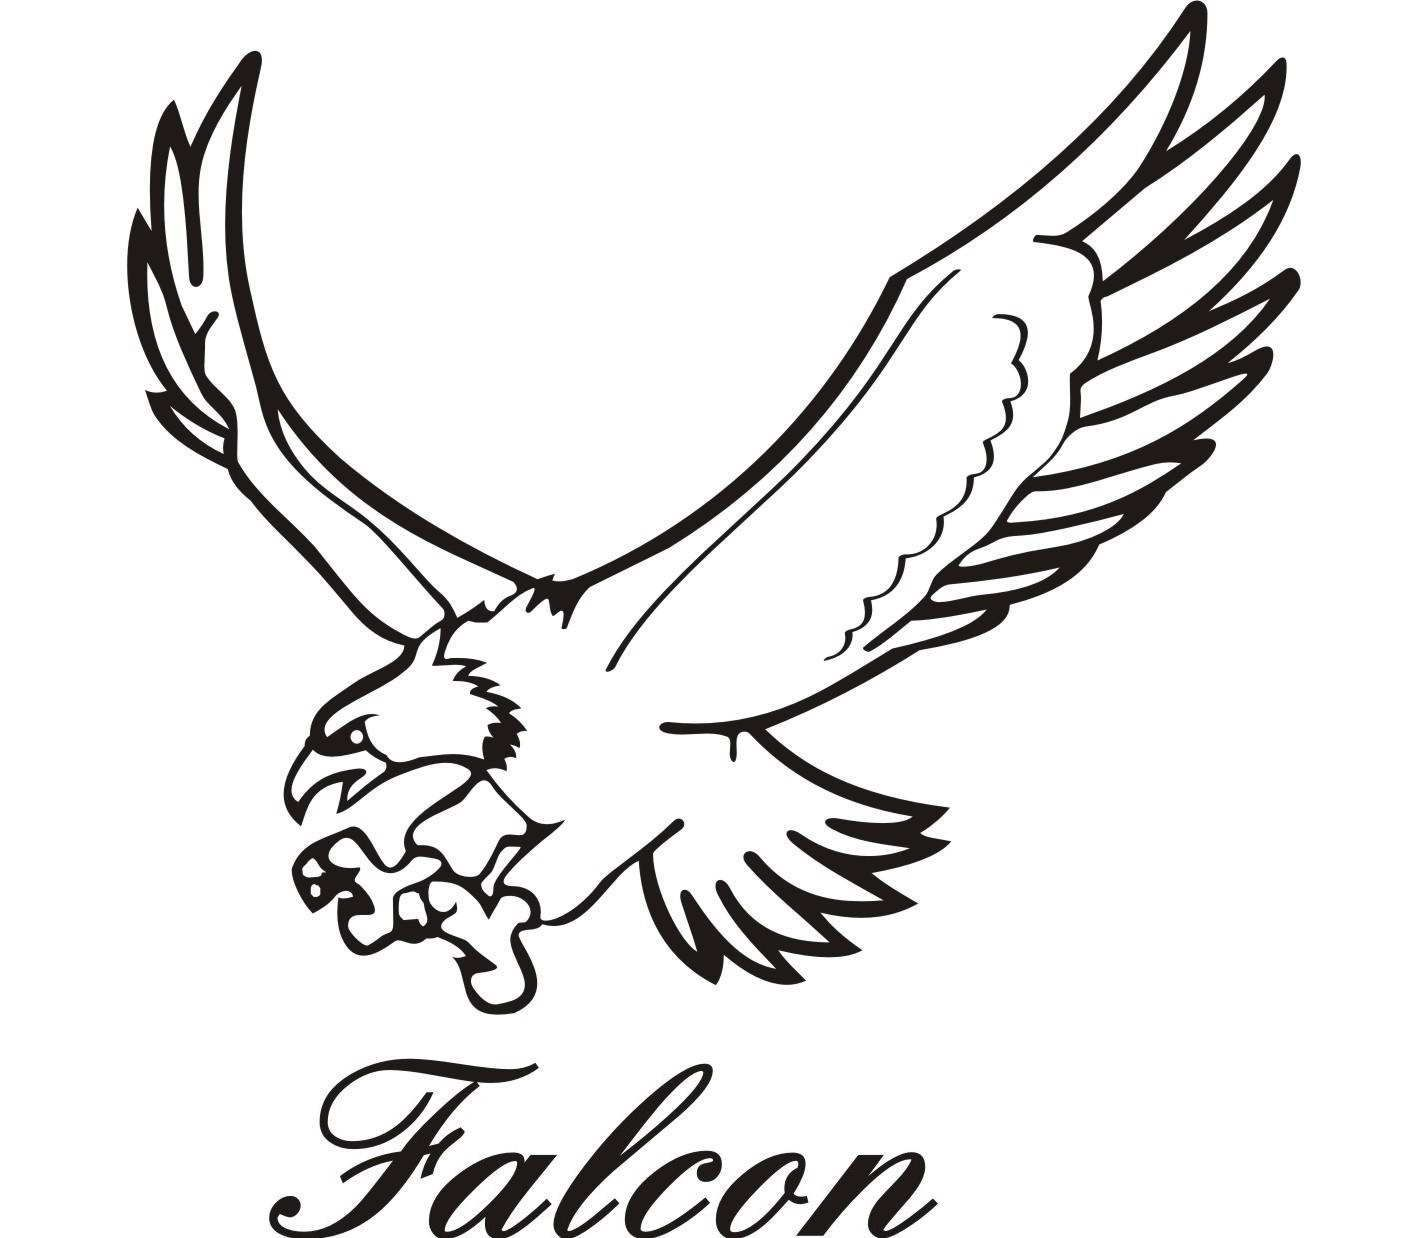 Falcon clipart. Peregrine drawings the best